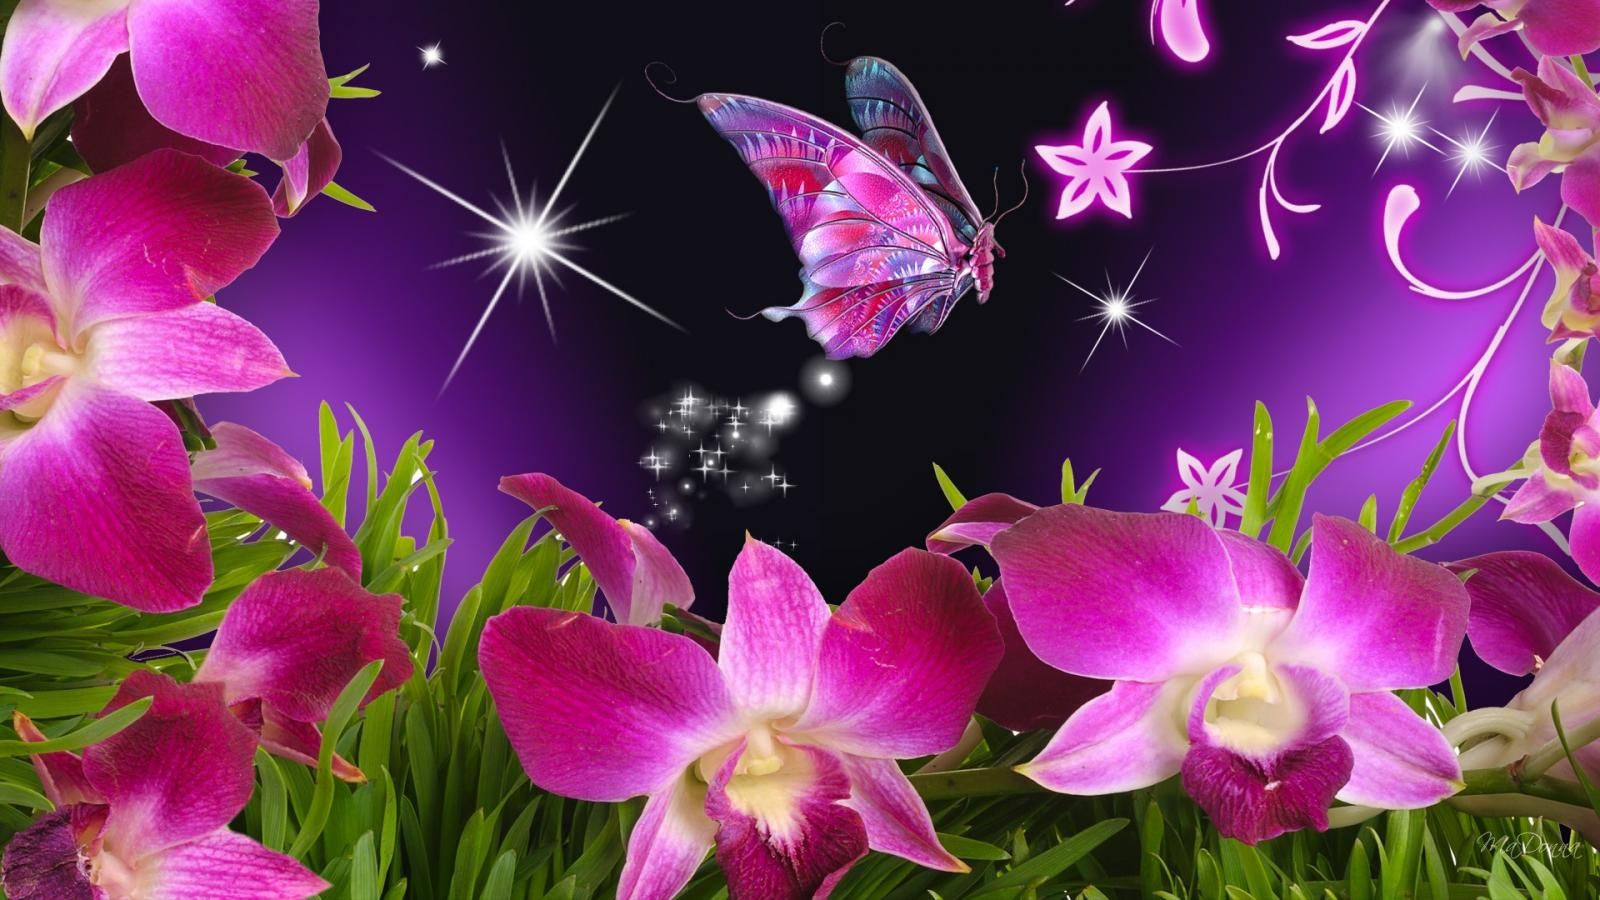 Purple butterfly and stars wallpaper download wallpapers nature purple butterfly and stars wallpaper download wallpapers nature stars more butterfly flowers orchid purple izmirmasajfo